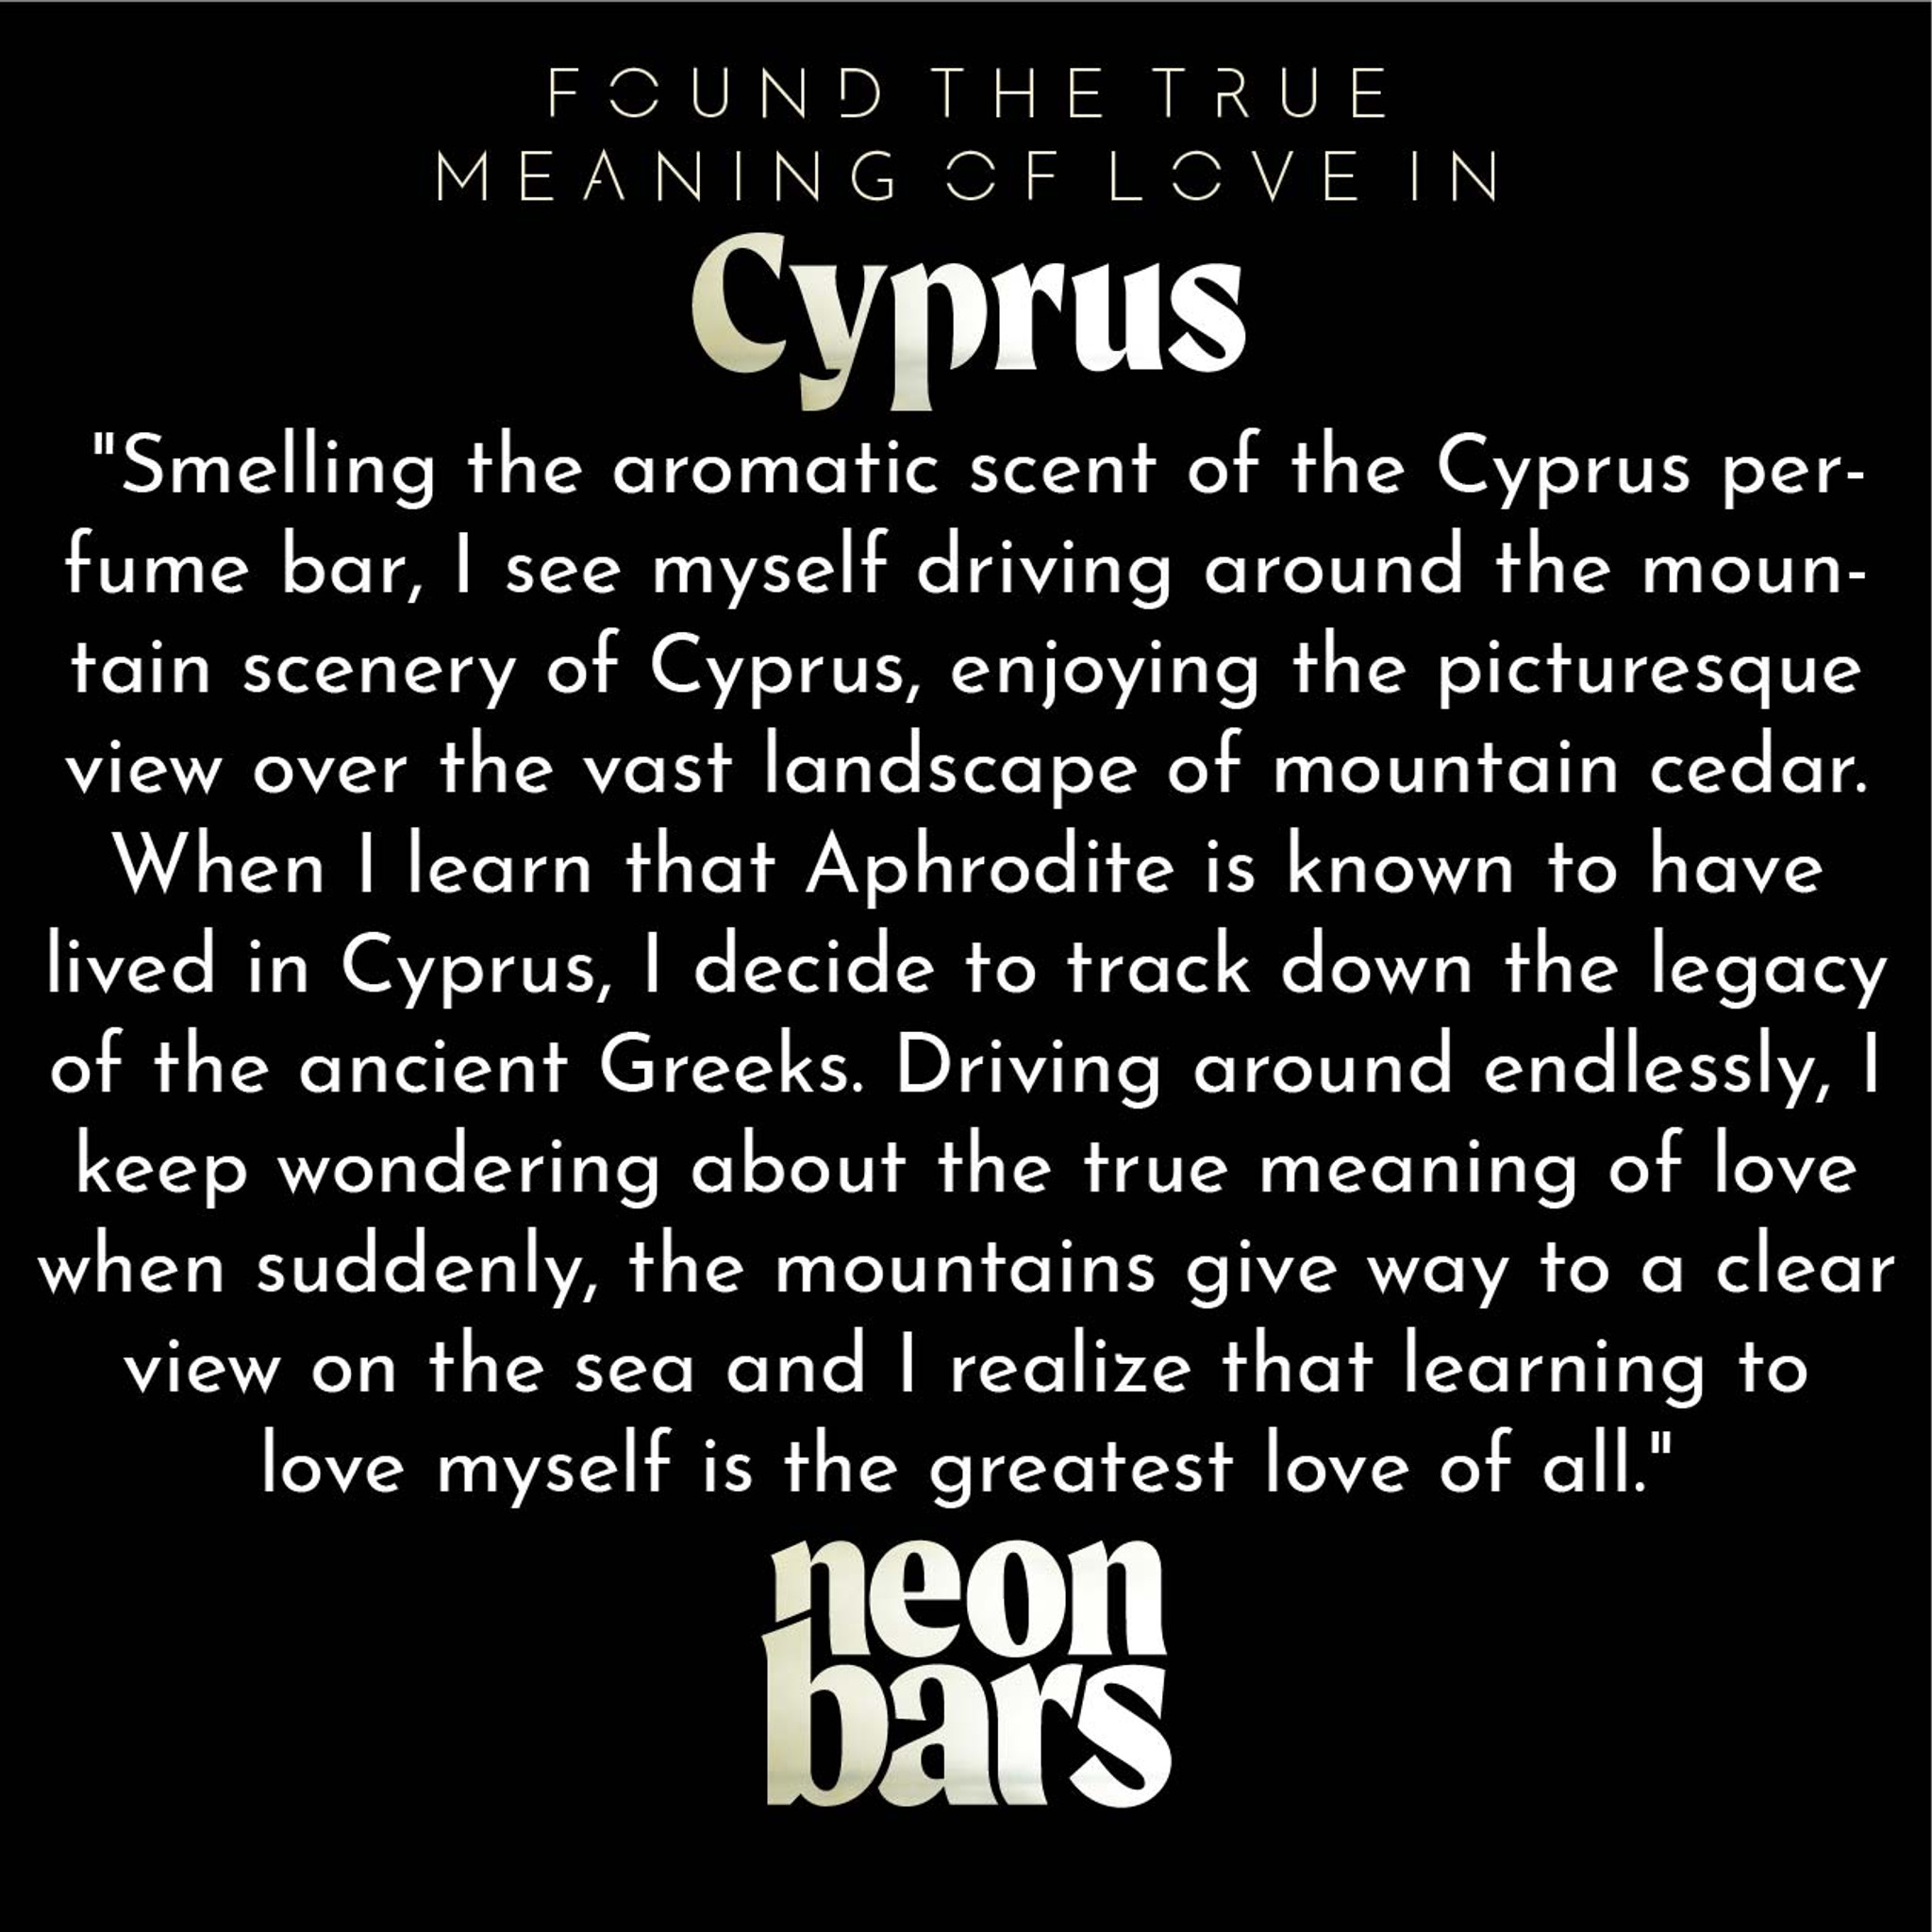 found the true meaning of love in Cyprus